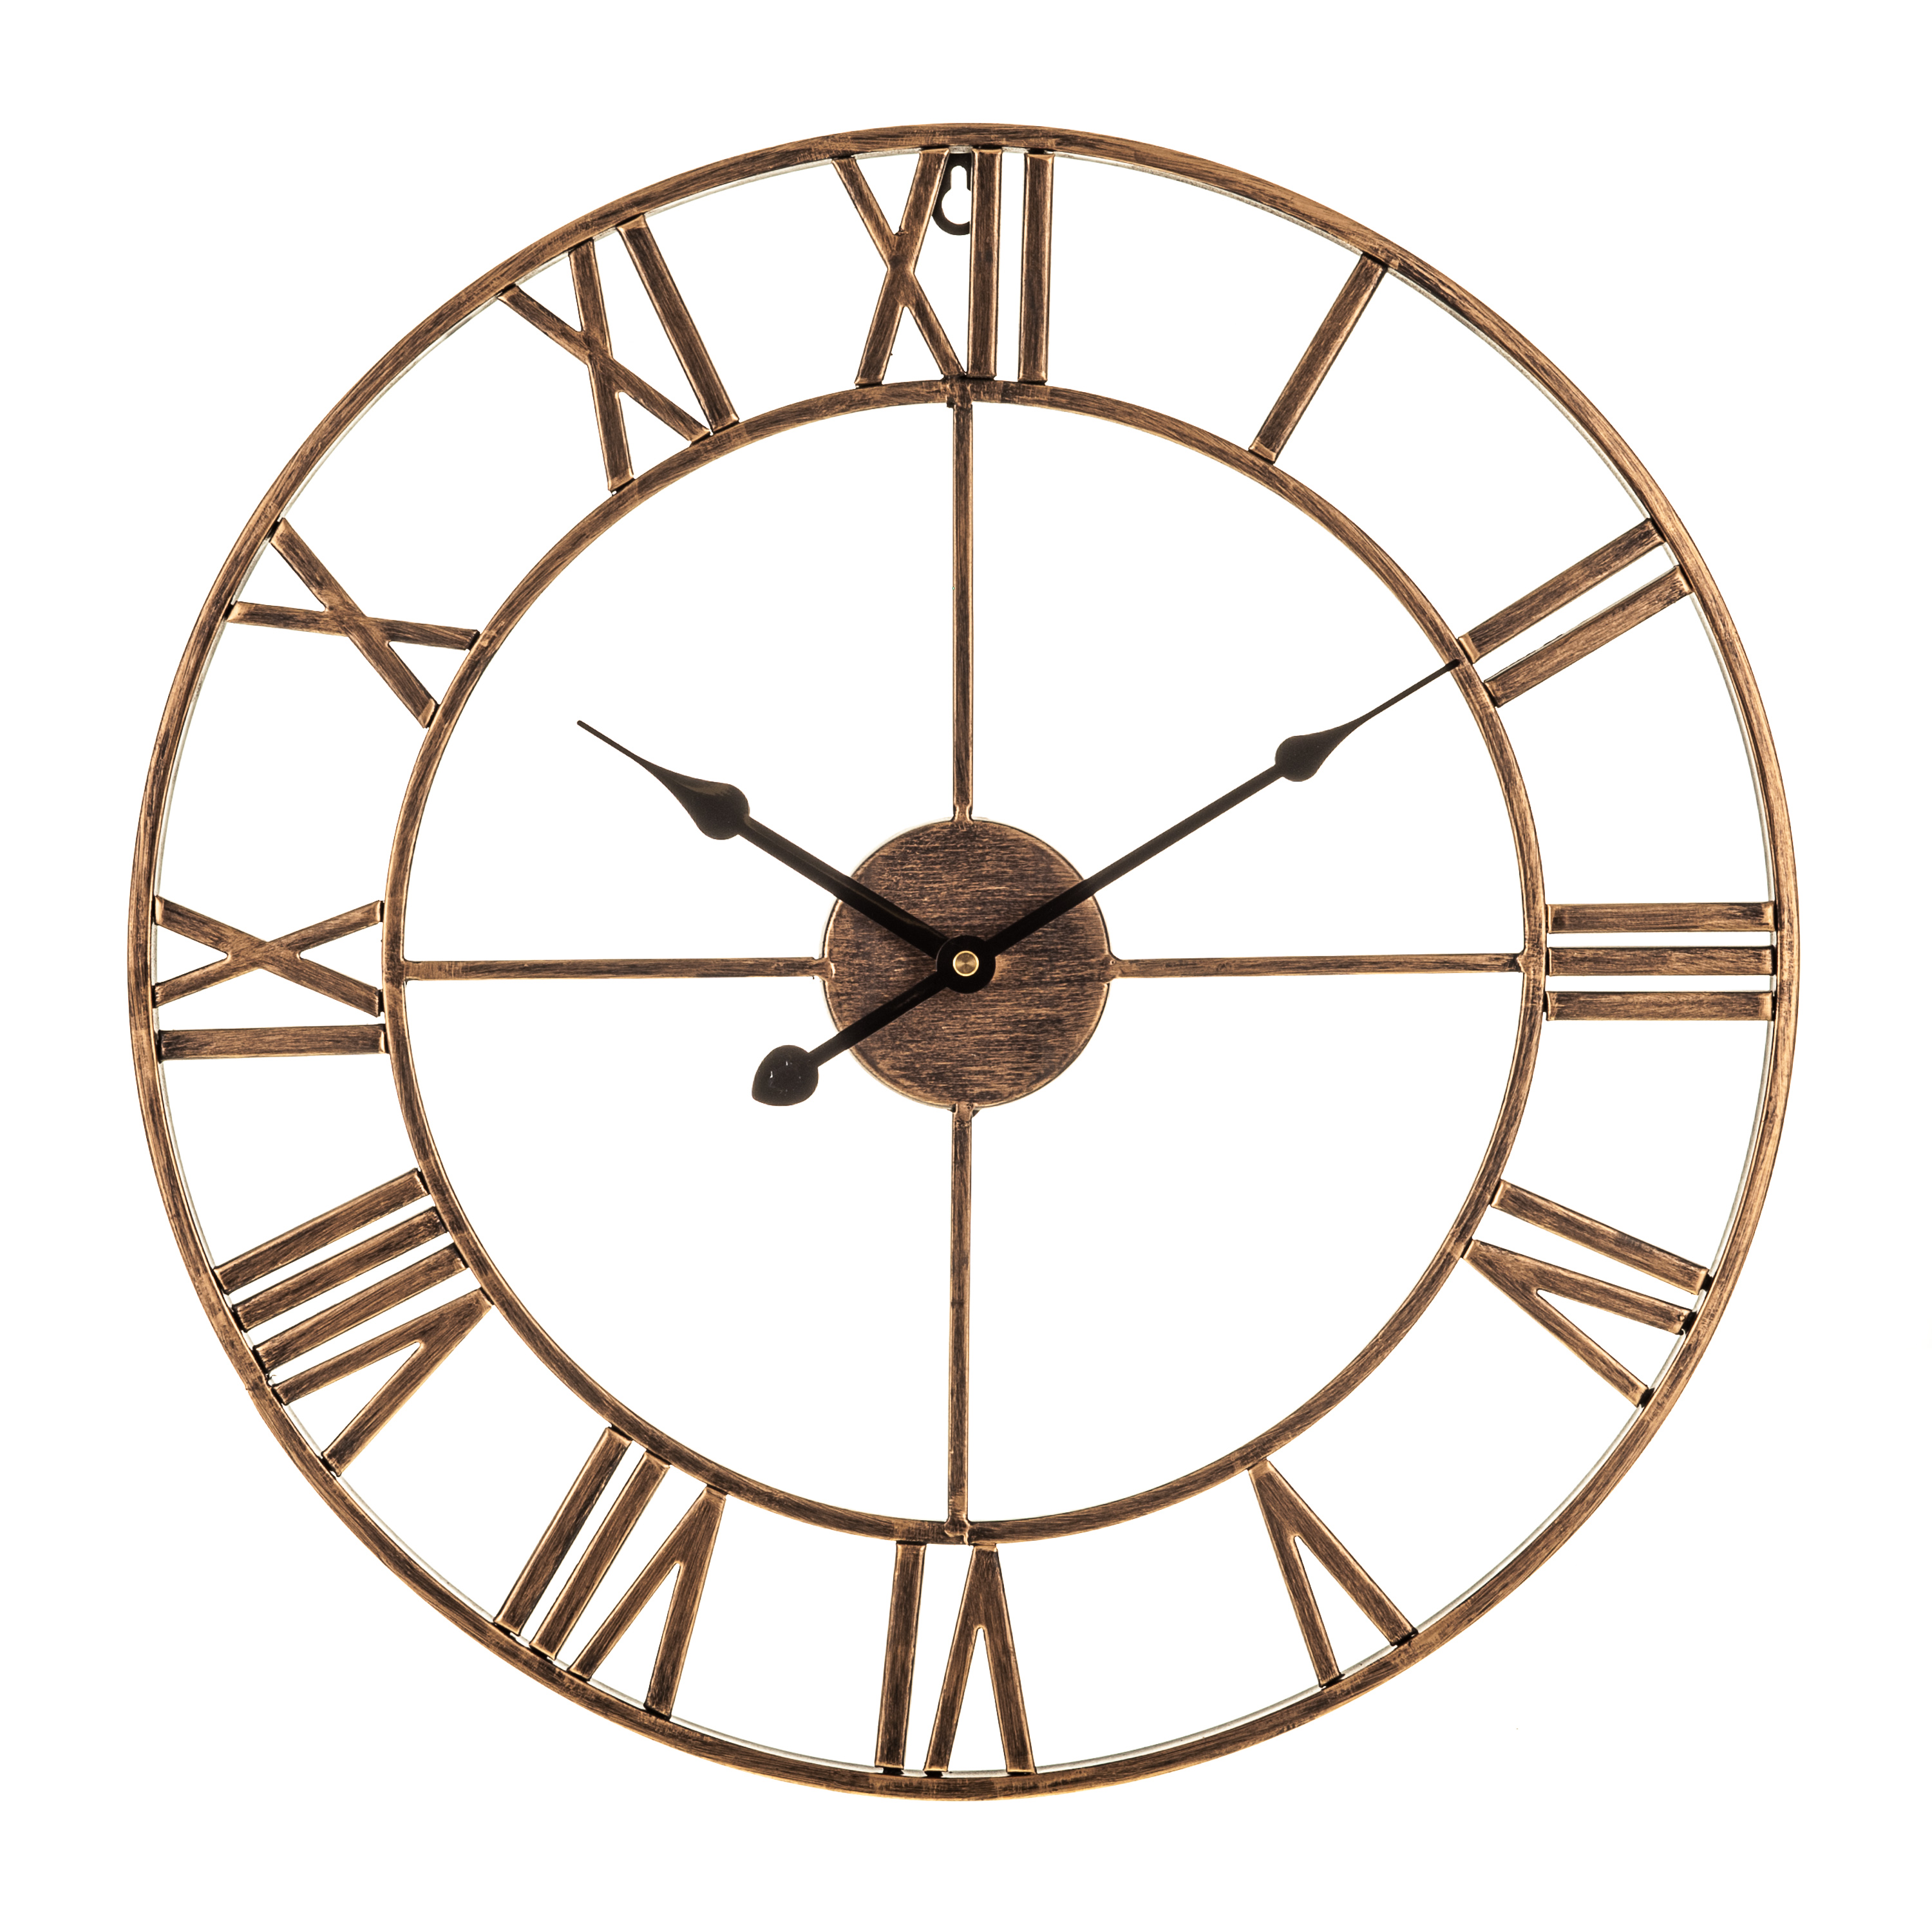 LIVIVO TRADITIONAL VINTAGE STYLE IRON WALL CLOCK ROMAN NUMERALS HOME ...